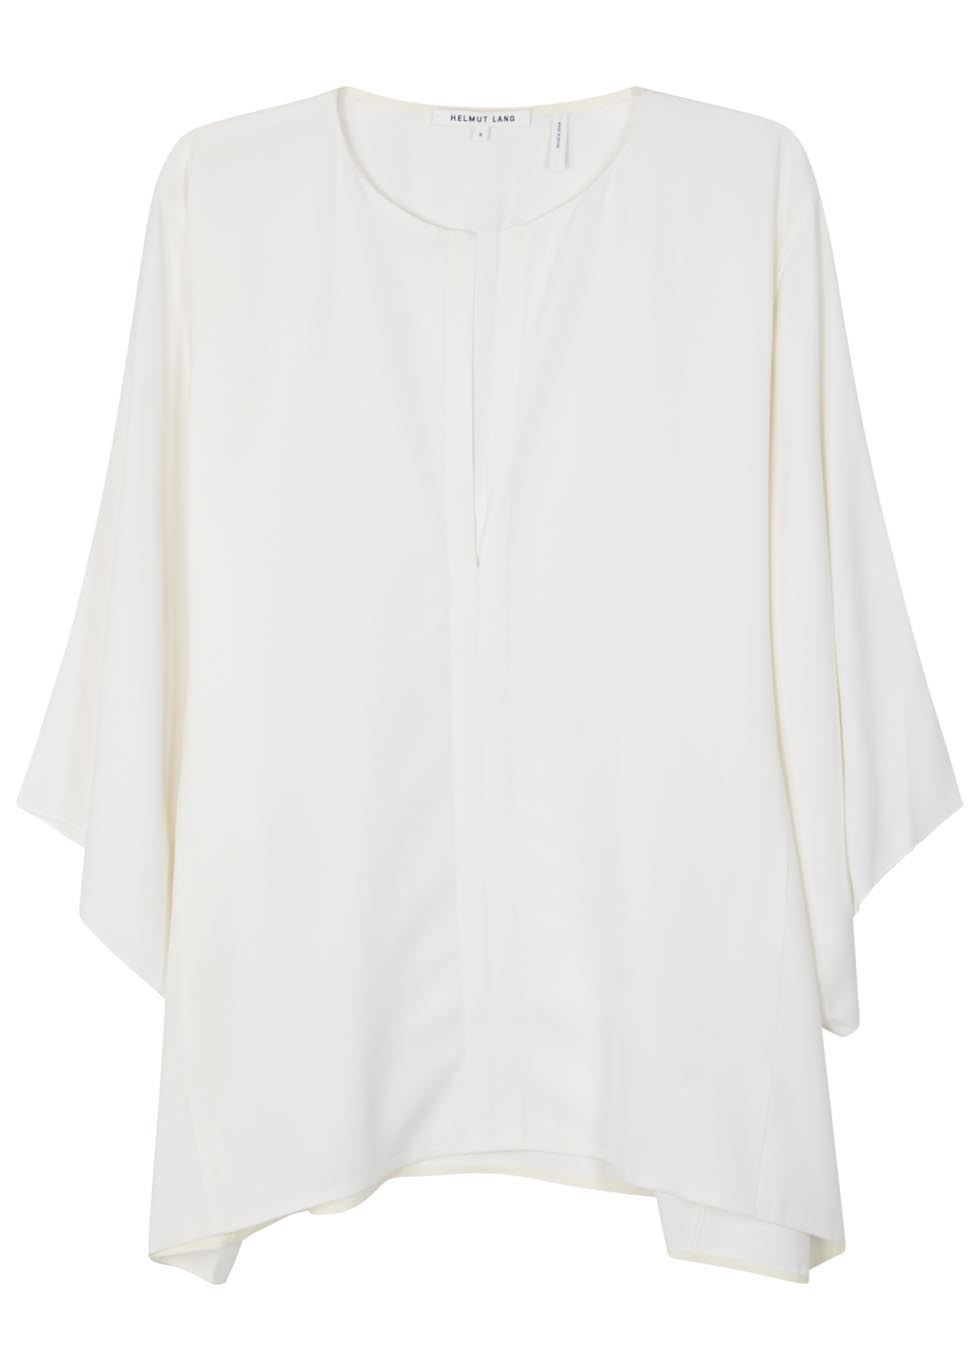 Ivory Silk Georgette Top - pattern: plain; style: blouse; predominant colour: white; occasions: casual; length: standard; fibres: silk - 100%; fit: loose; neckline: crew; sleeve length: long sleeve; sleeve style: standard; texture group: sheer fabrics/chiffon/organza etc.; pattern type: fabric; season: s/s 2016; wardrobe: basic